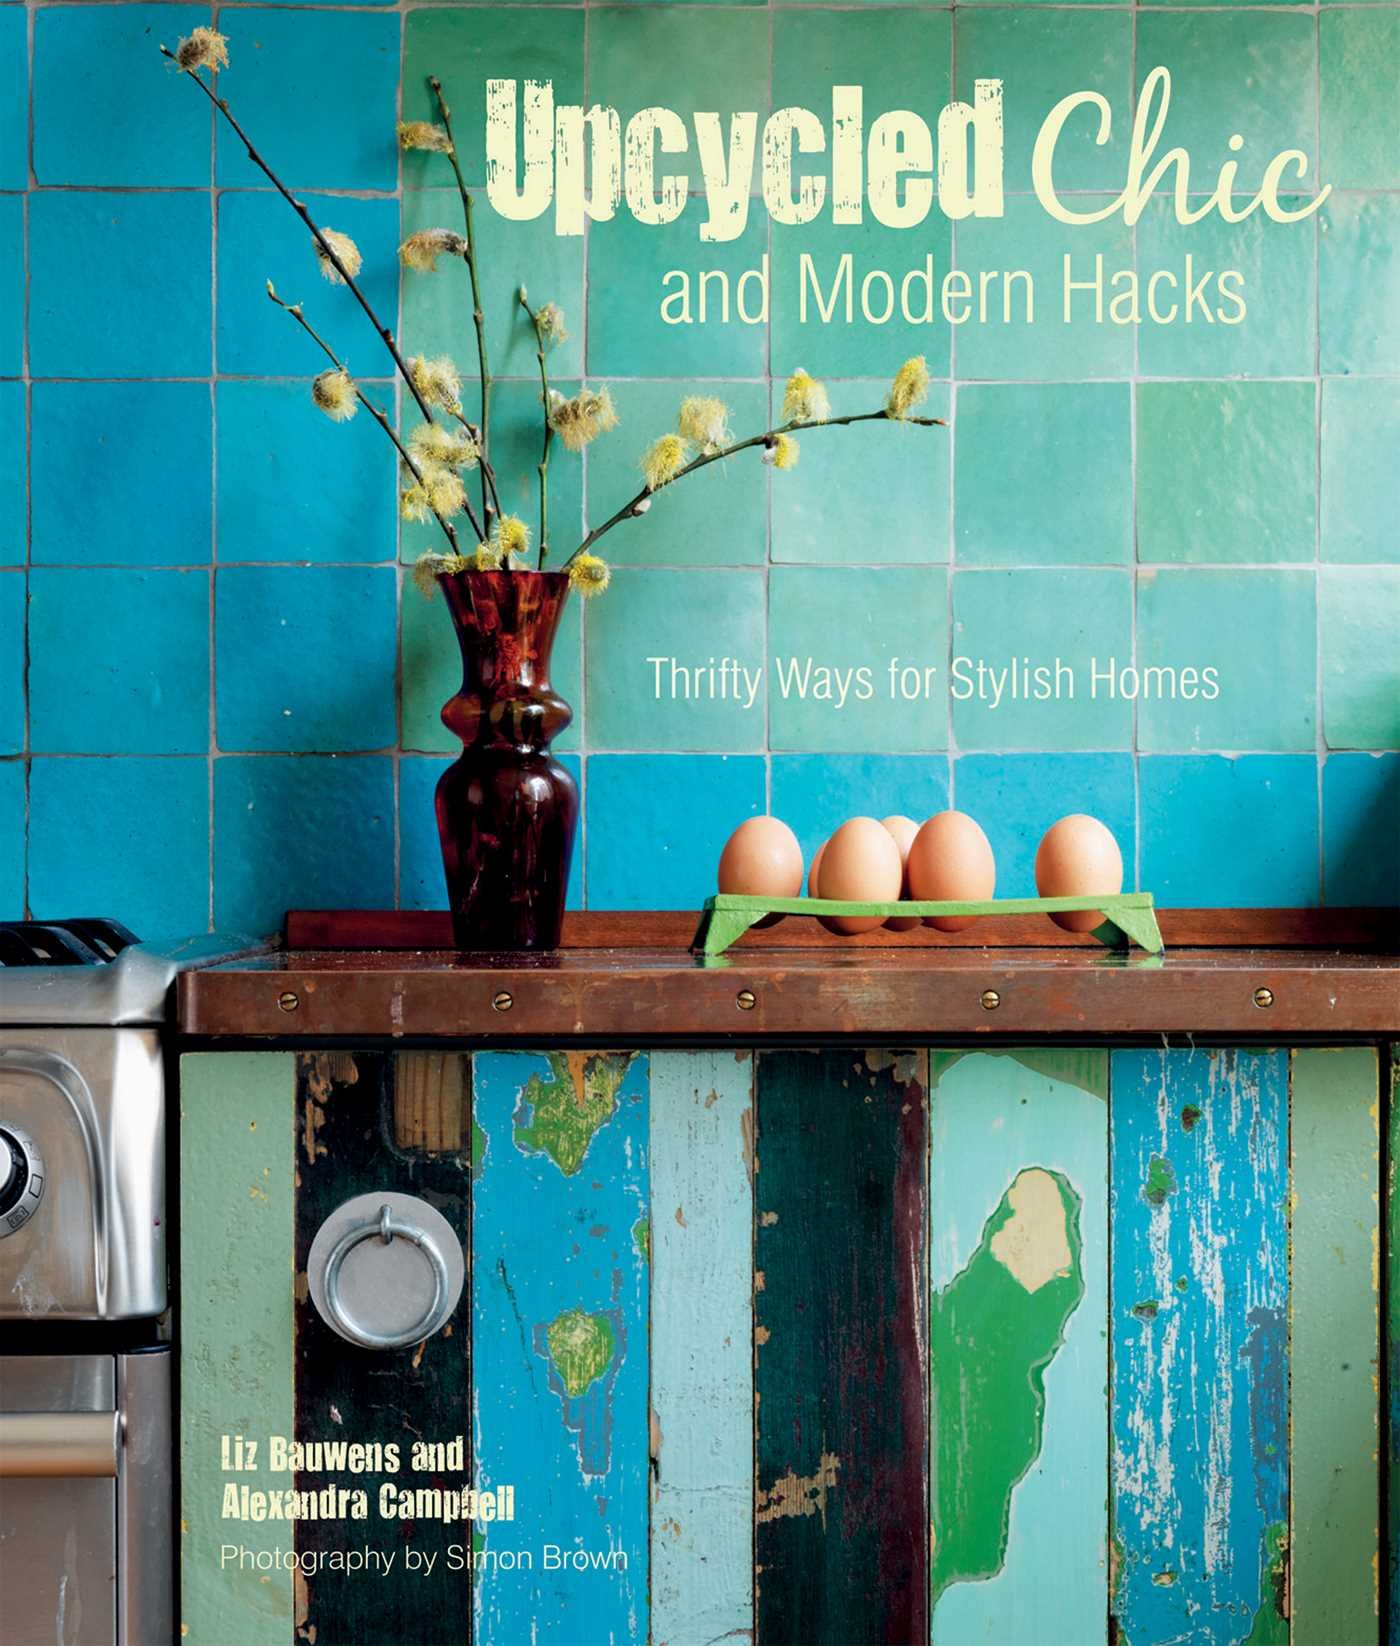 upcycled chic and modern hacks thrifty ways for stylish homes upcycled chic and modern hacks thrifty ways for stylish homes liz bauwens alexandra campbell 9781782491859 amazon com books